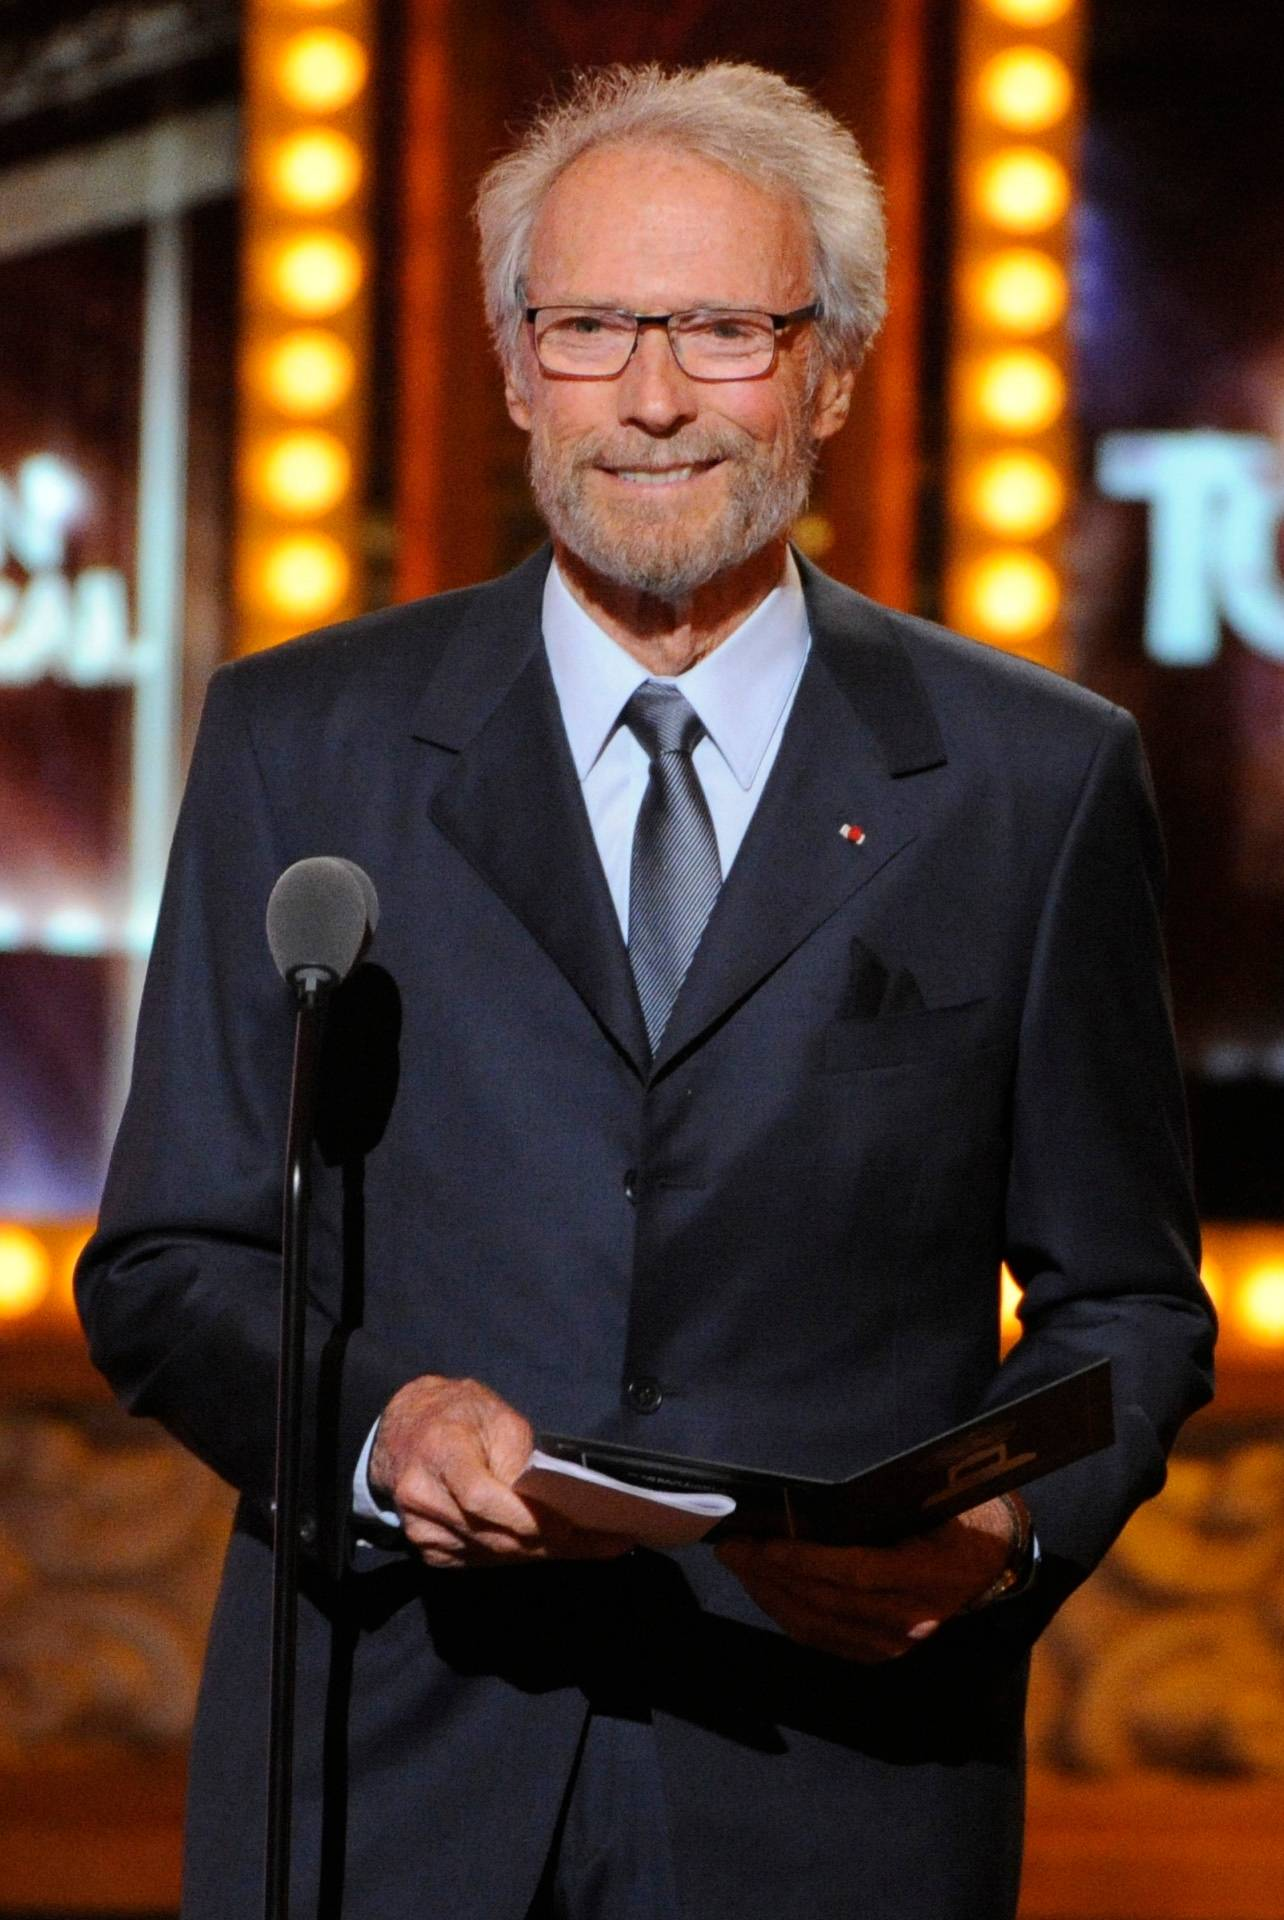 Clint Eastwood speaks onstage at the 68th annual Tony Awards at Radio City Music Hall on Sunday.